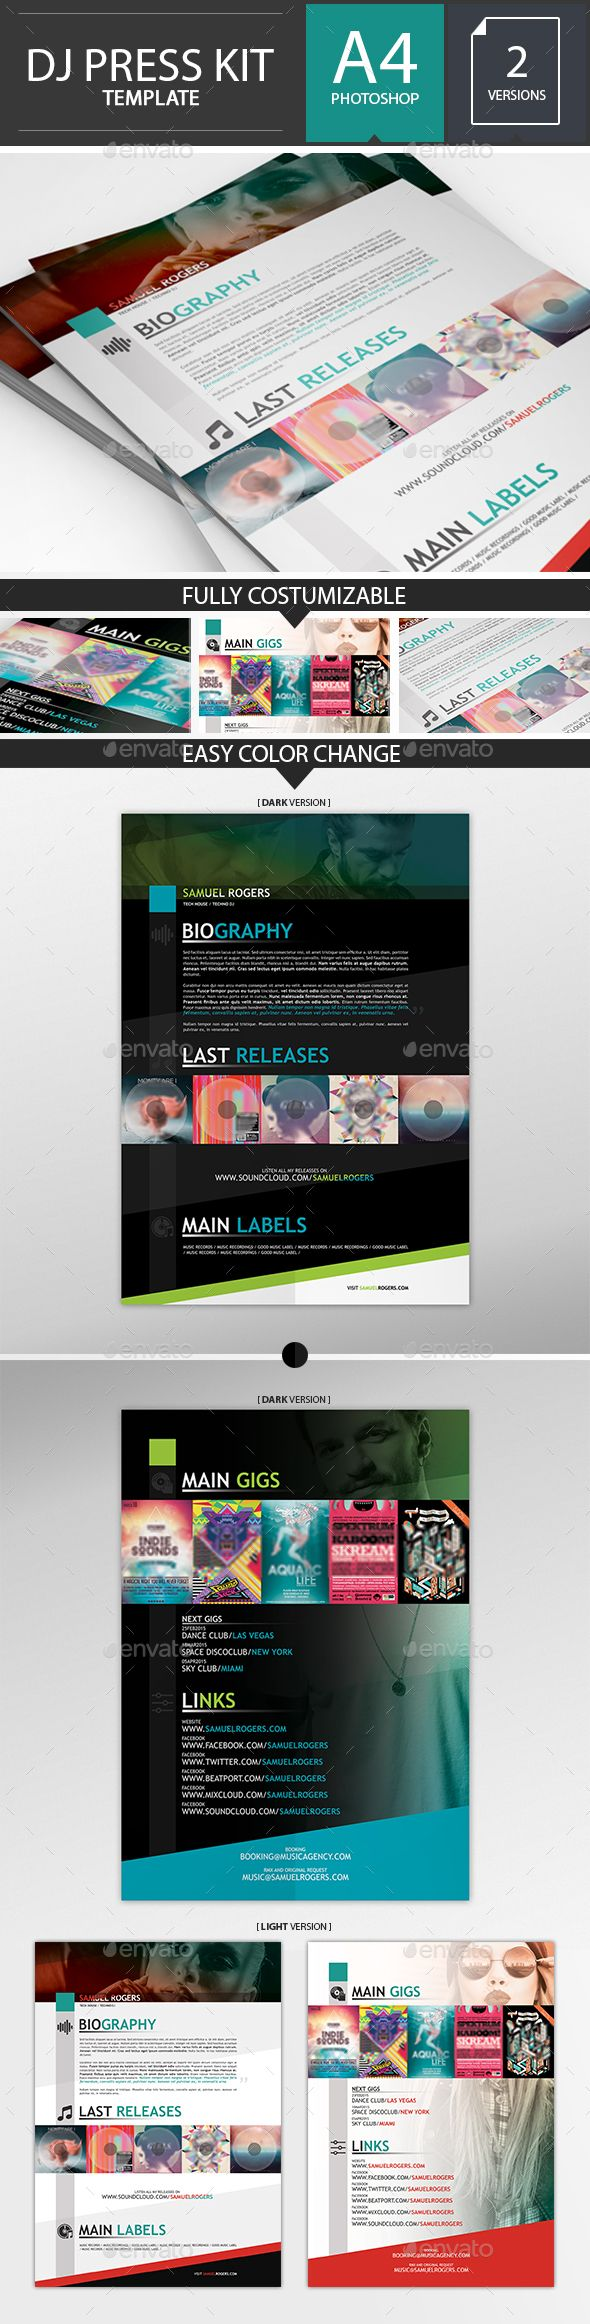 Dj musician press kit resume psd template press kits for Dj press kit template free